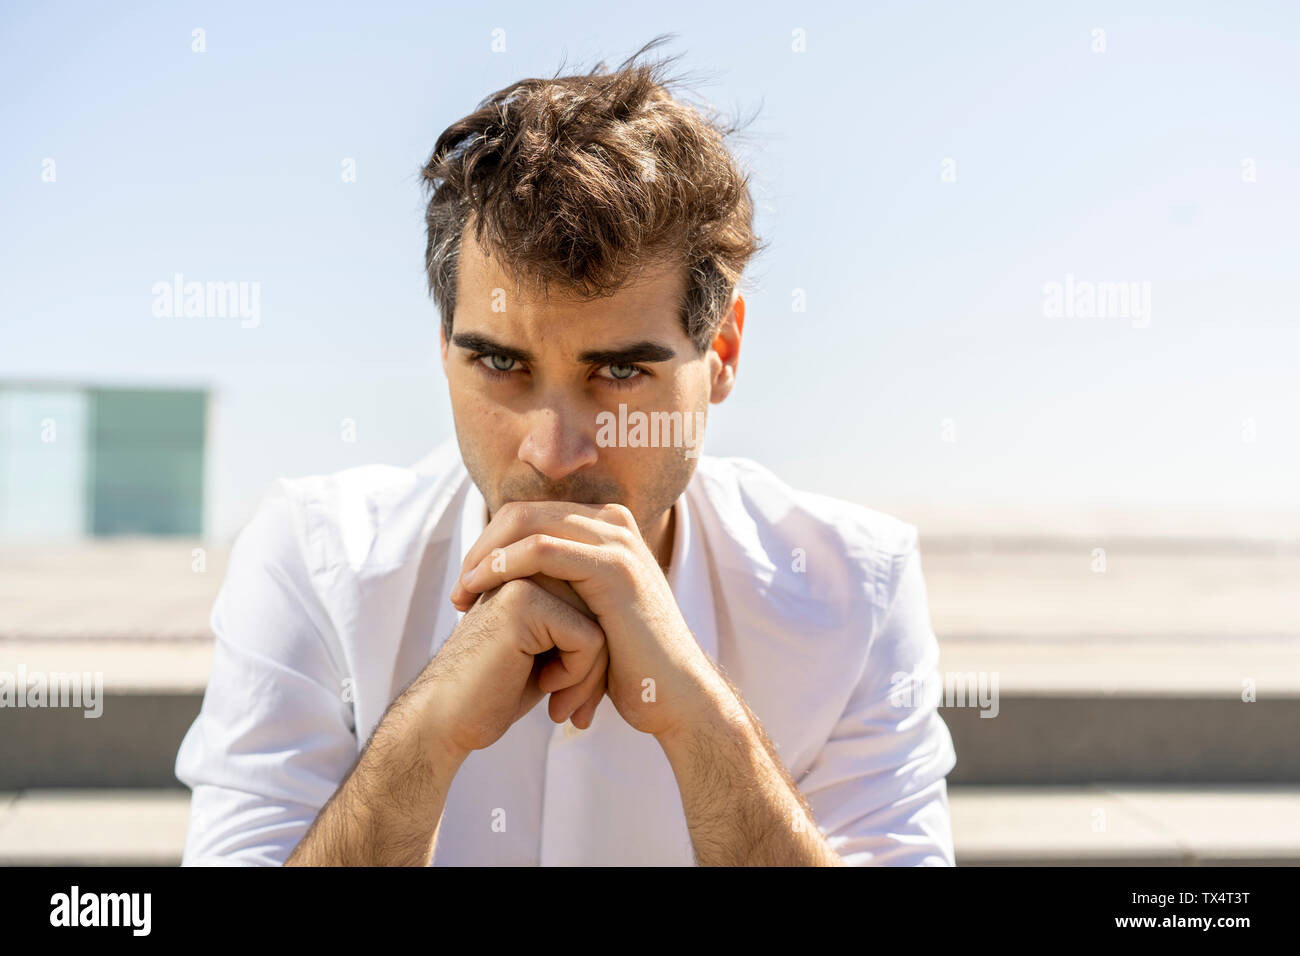 Portrait of serious businessman outdoors - Stock Image